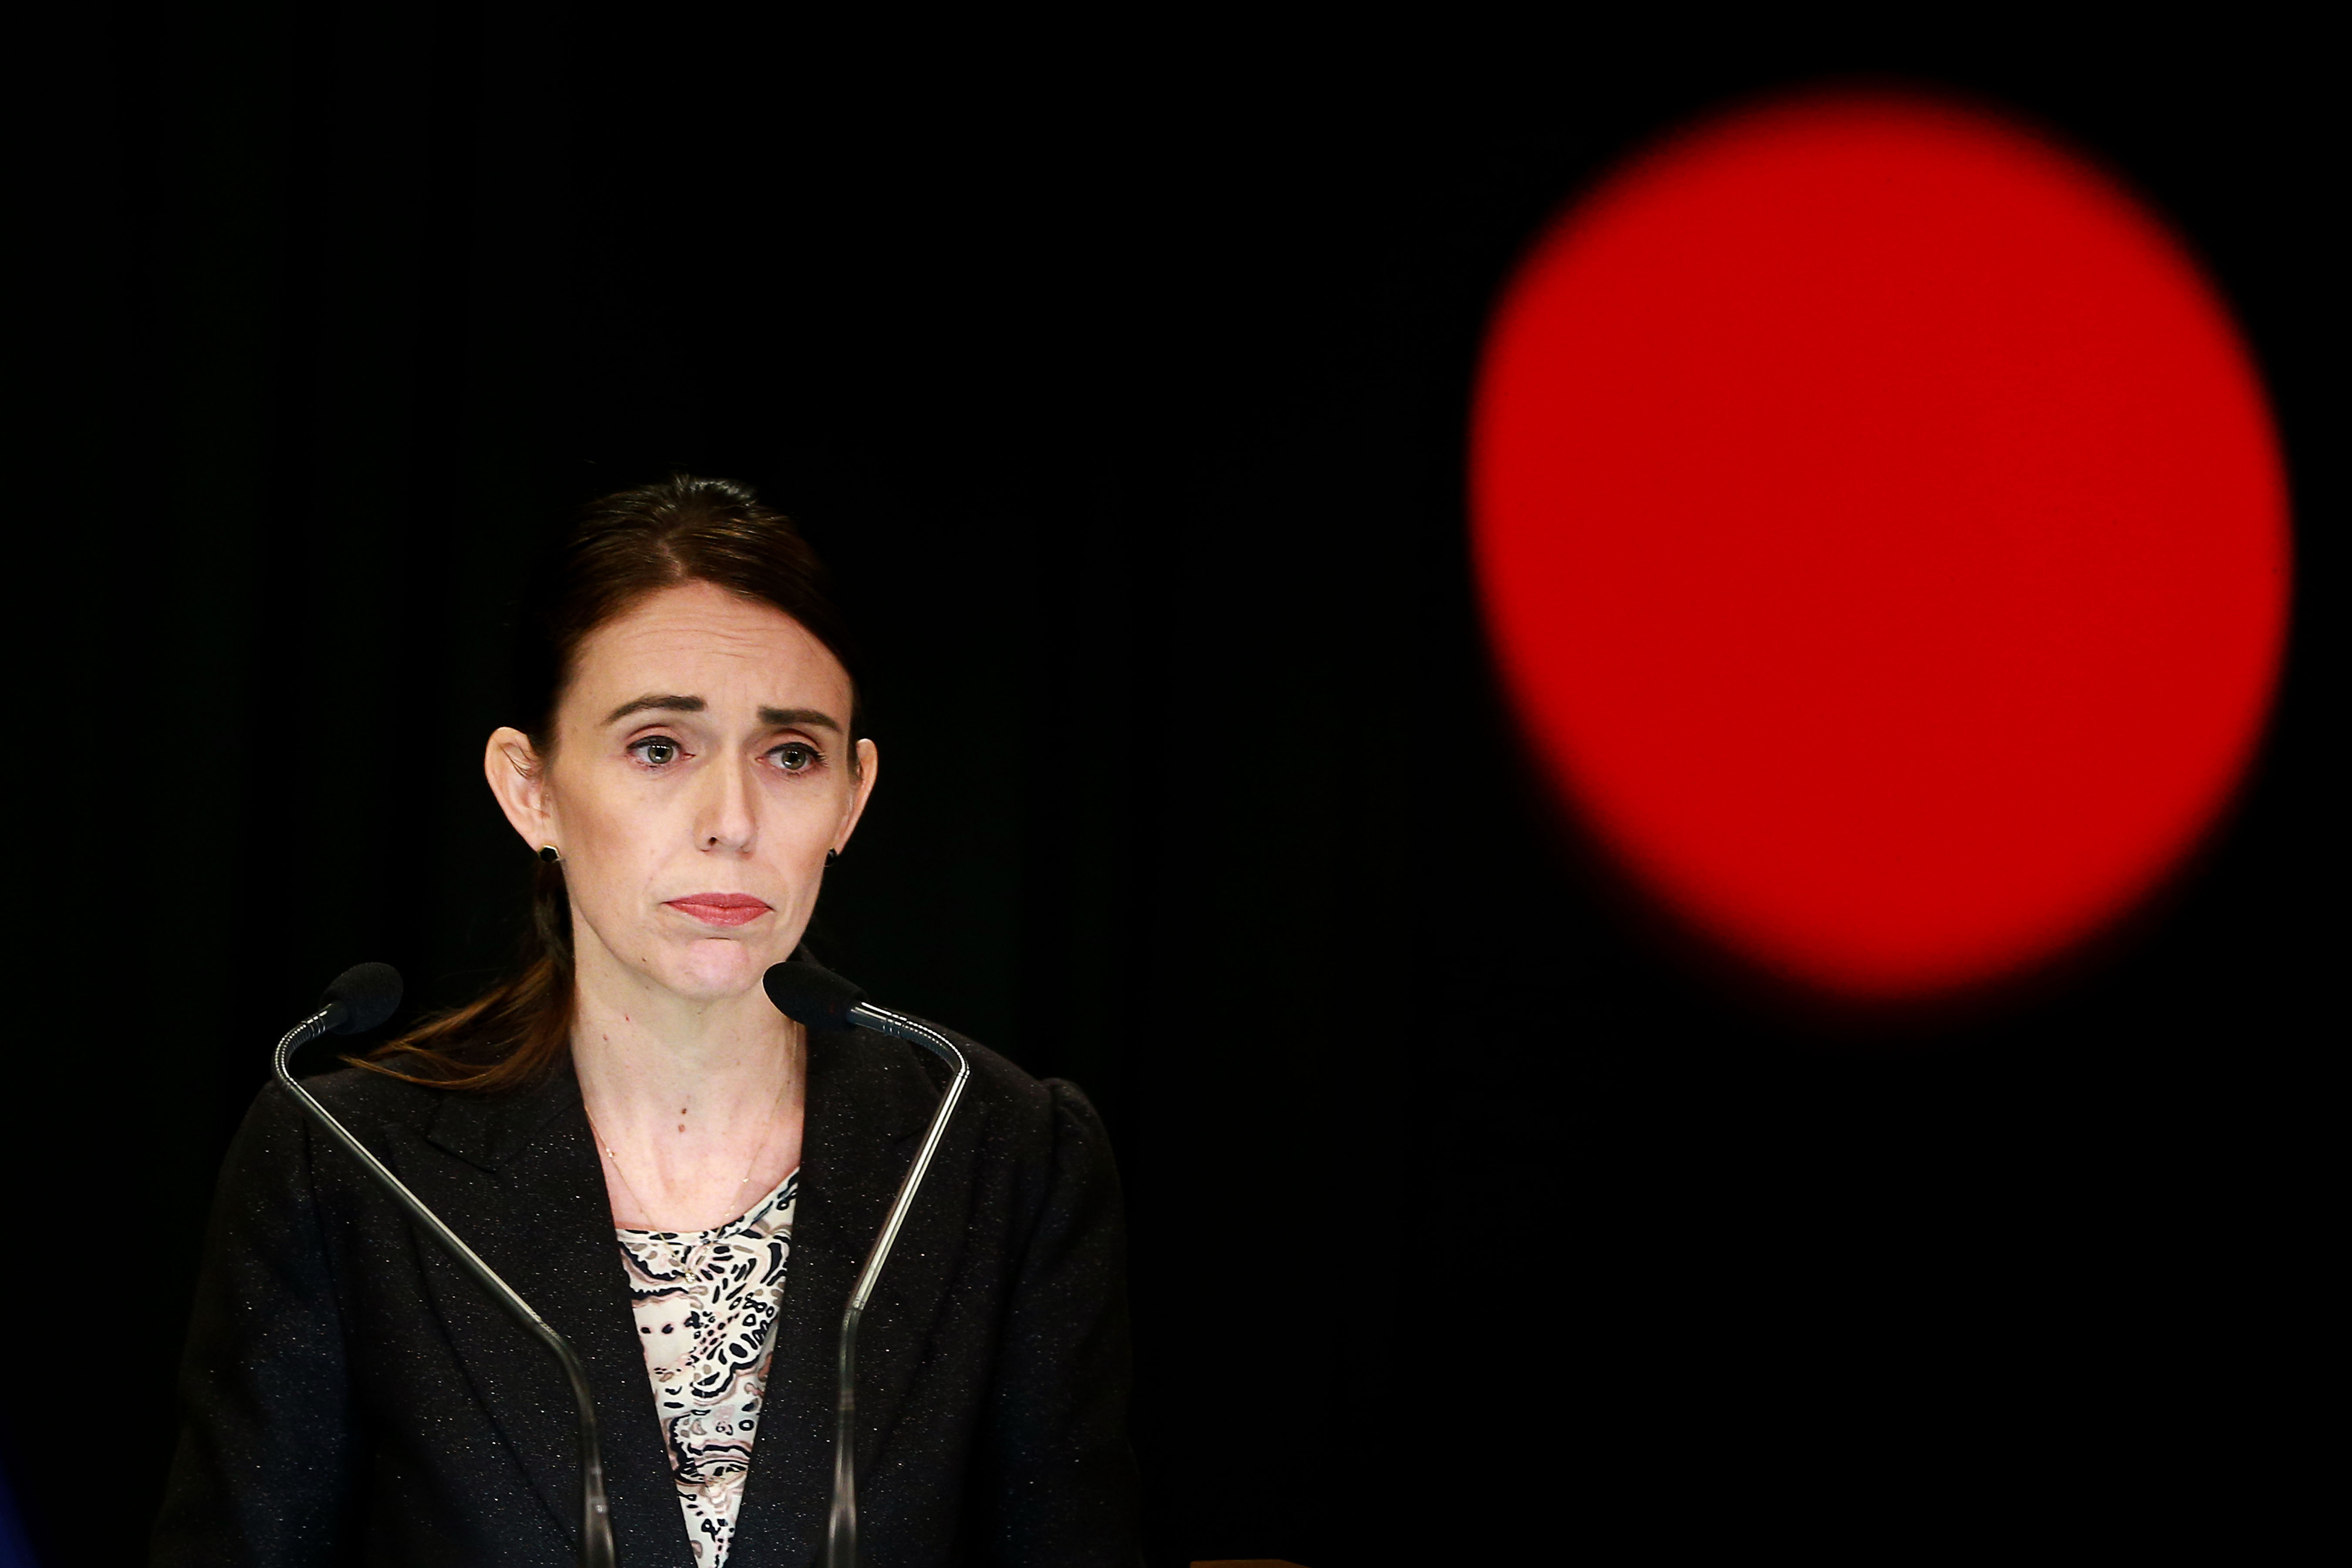 New Zealand to ban assault weapons after Christchurch mosque shootings